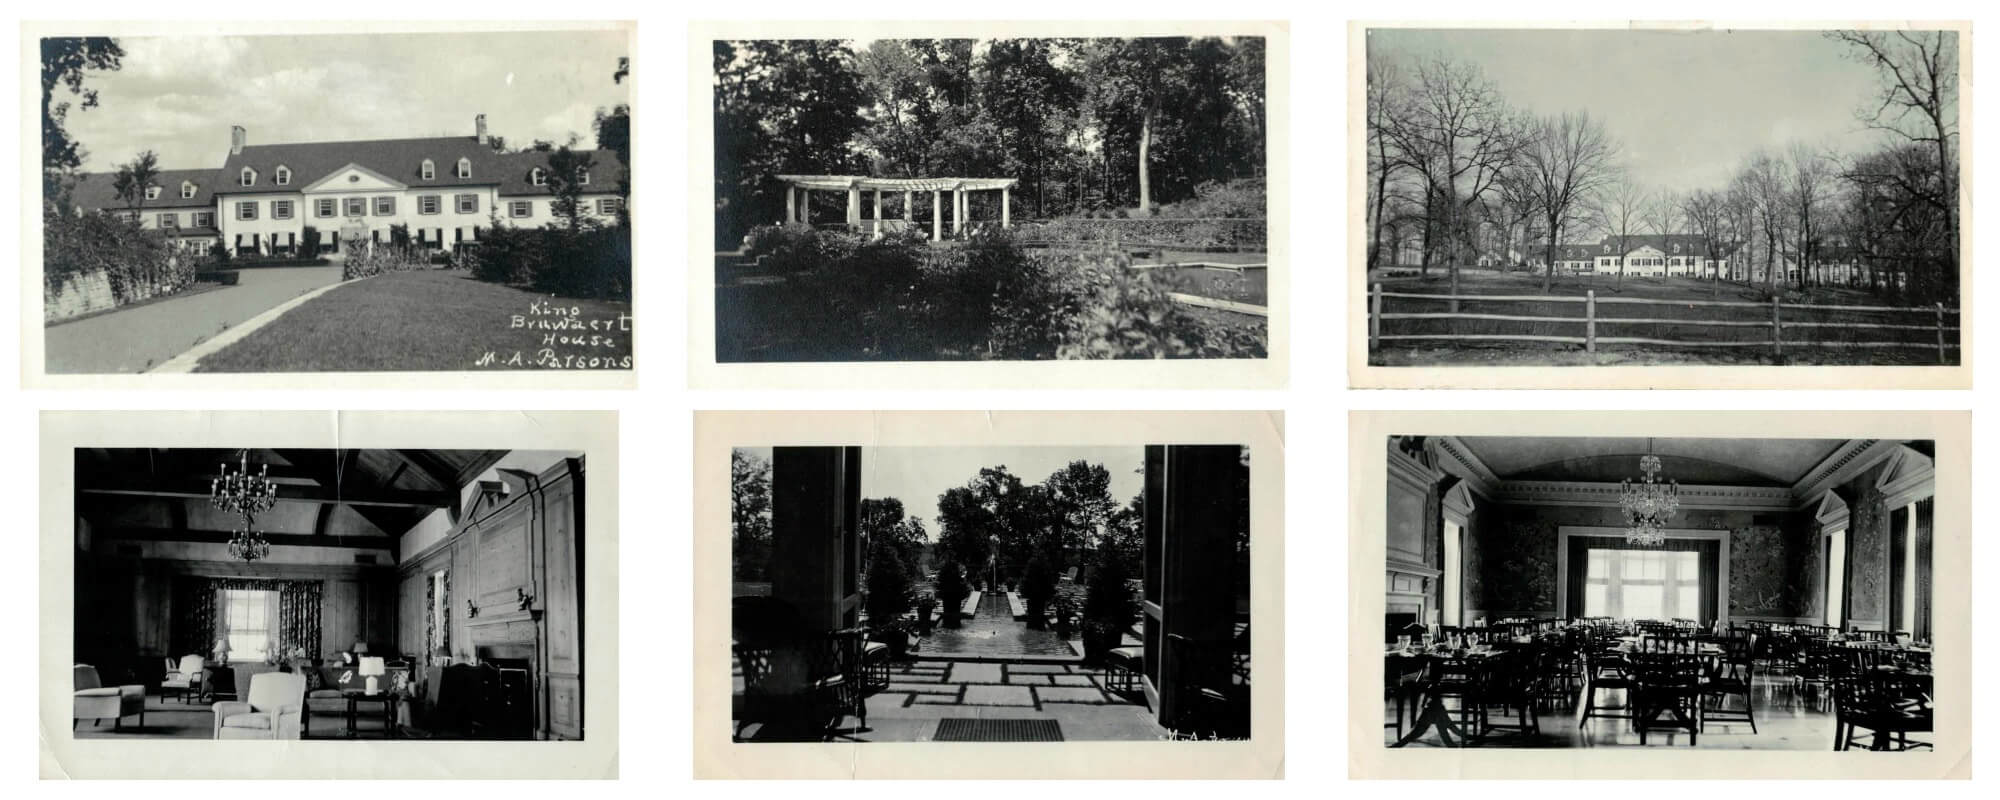 historical images of King-Bruwaert House